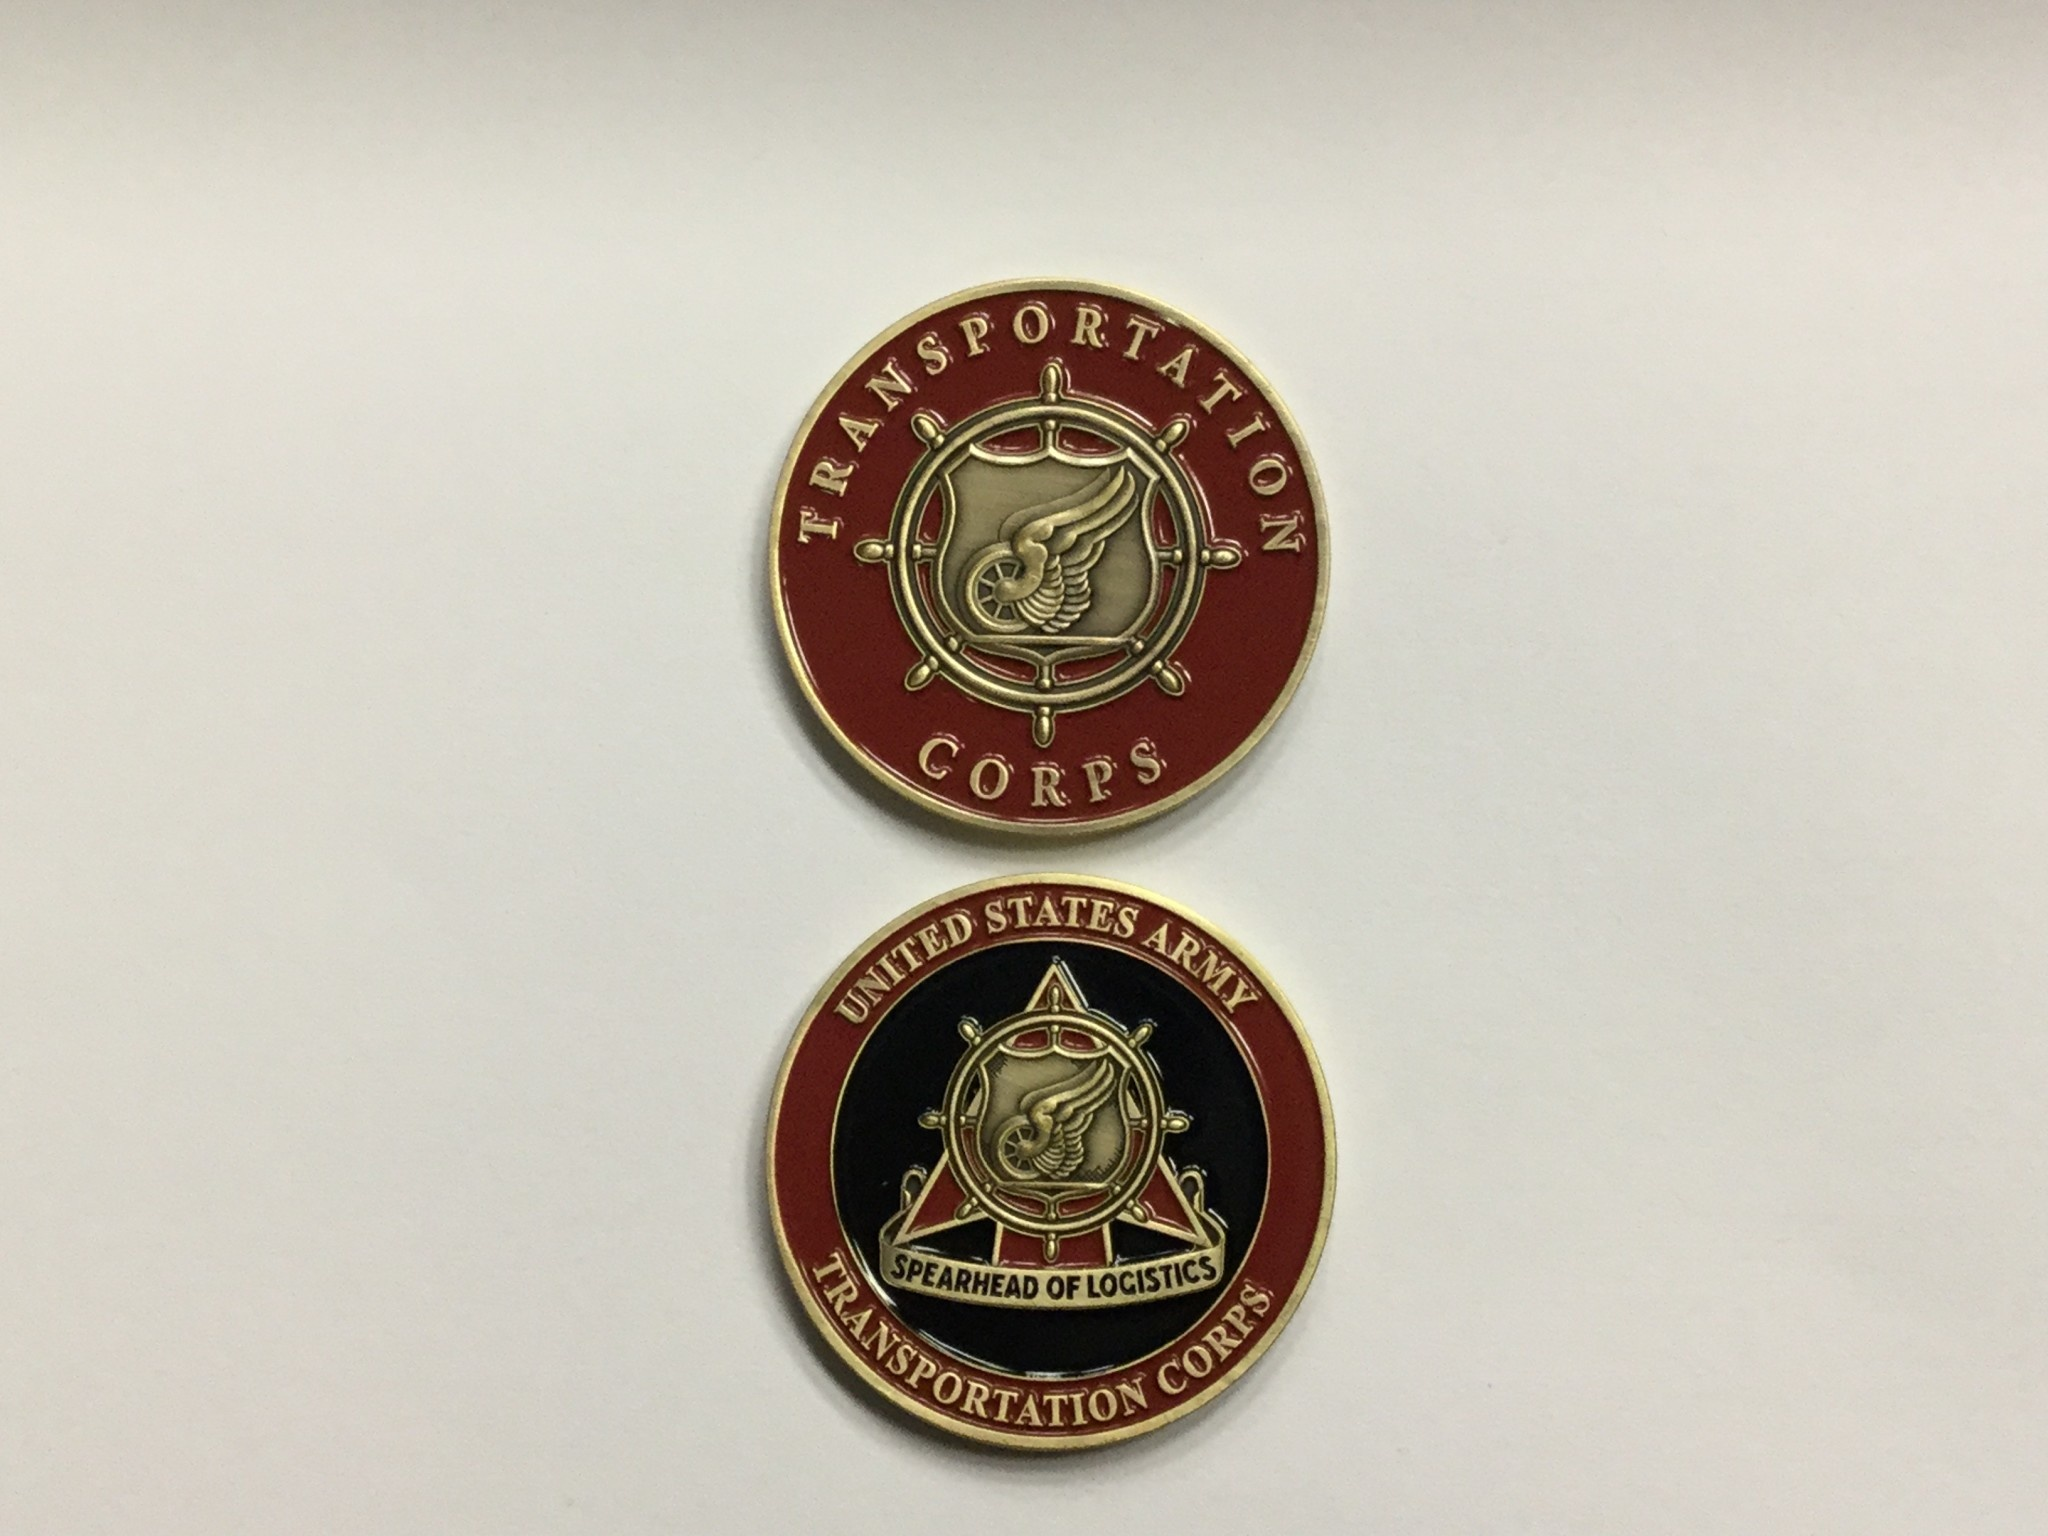 CHALLENGE COIN COMPANY SPEARHEAD/TRANSPORTATION CORPS